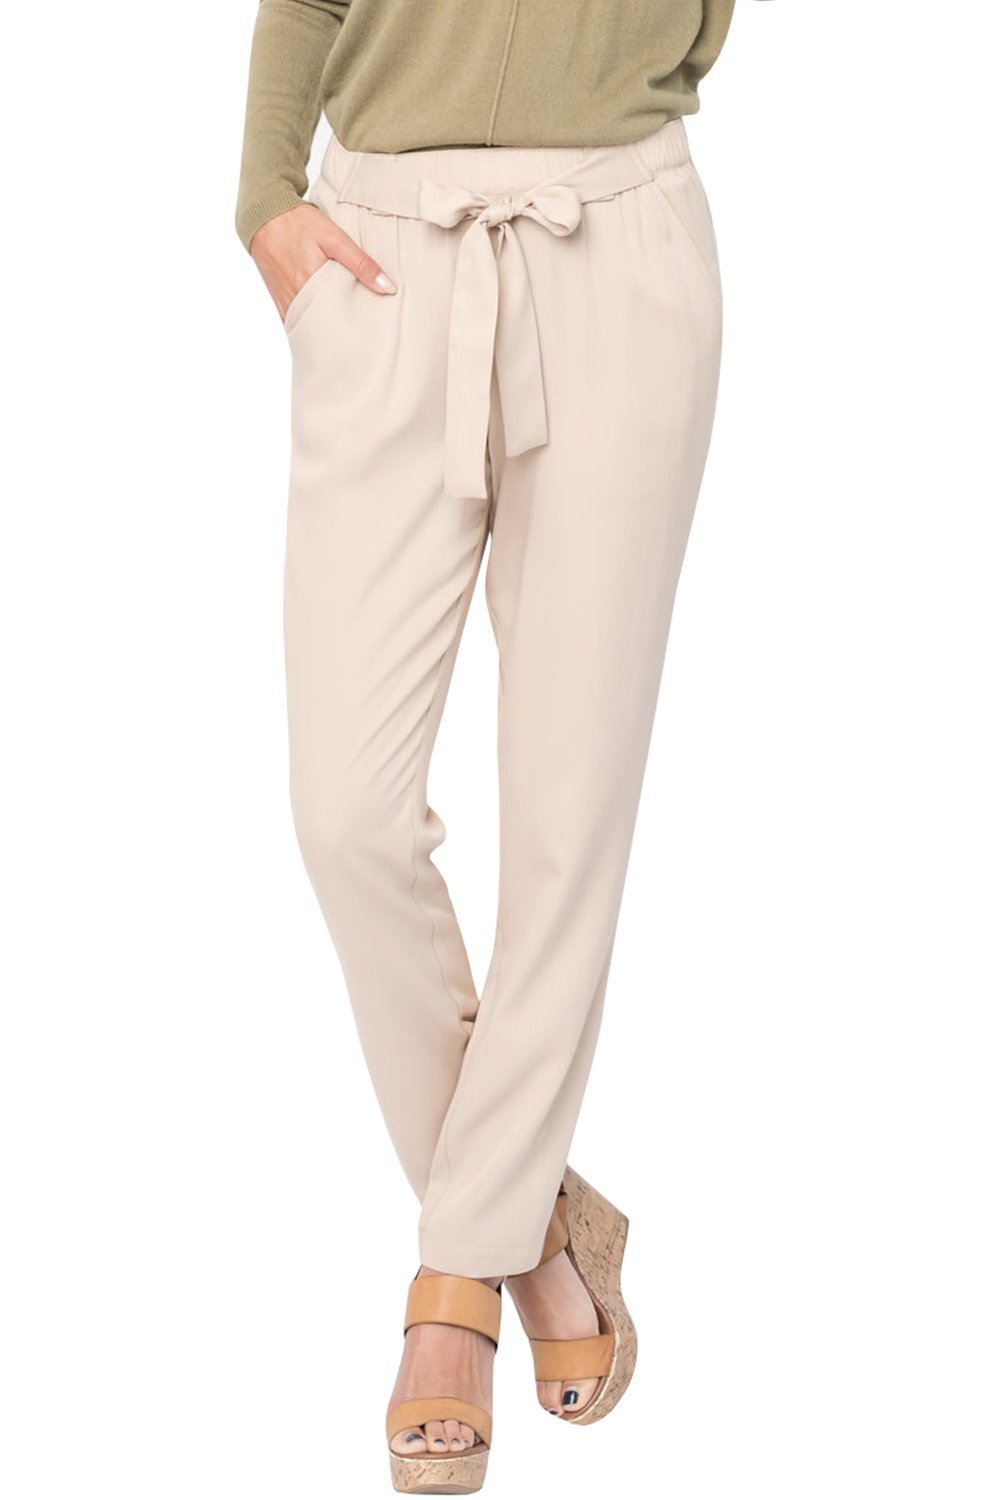 EastLife Womens High Waist Casual Pants Stretch Straight Long Trousers with Pockets (Small, Khaki)